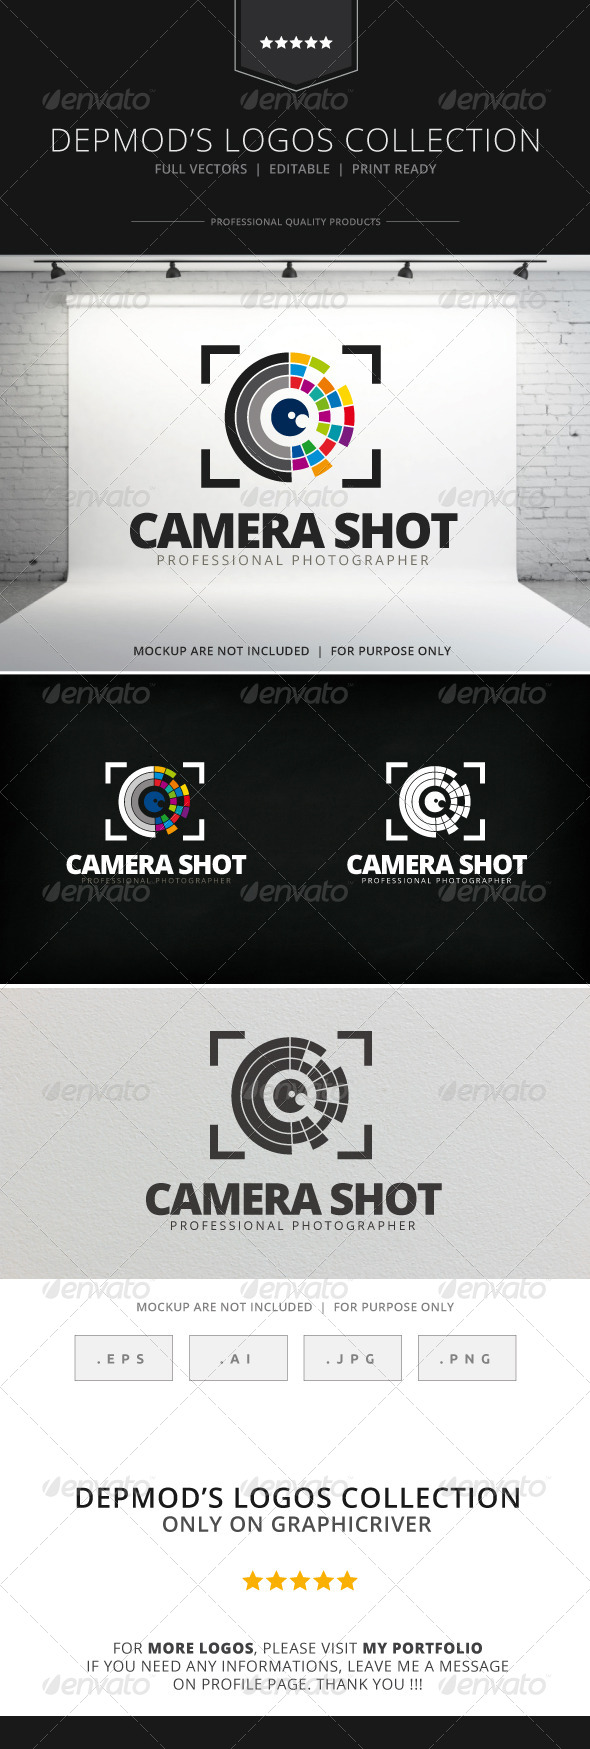 GraphicRiver Camera Shot Logo 7771825